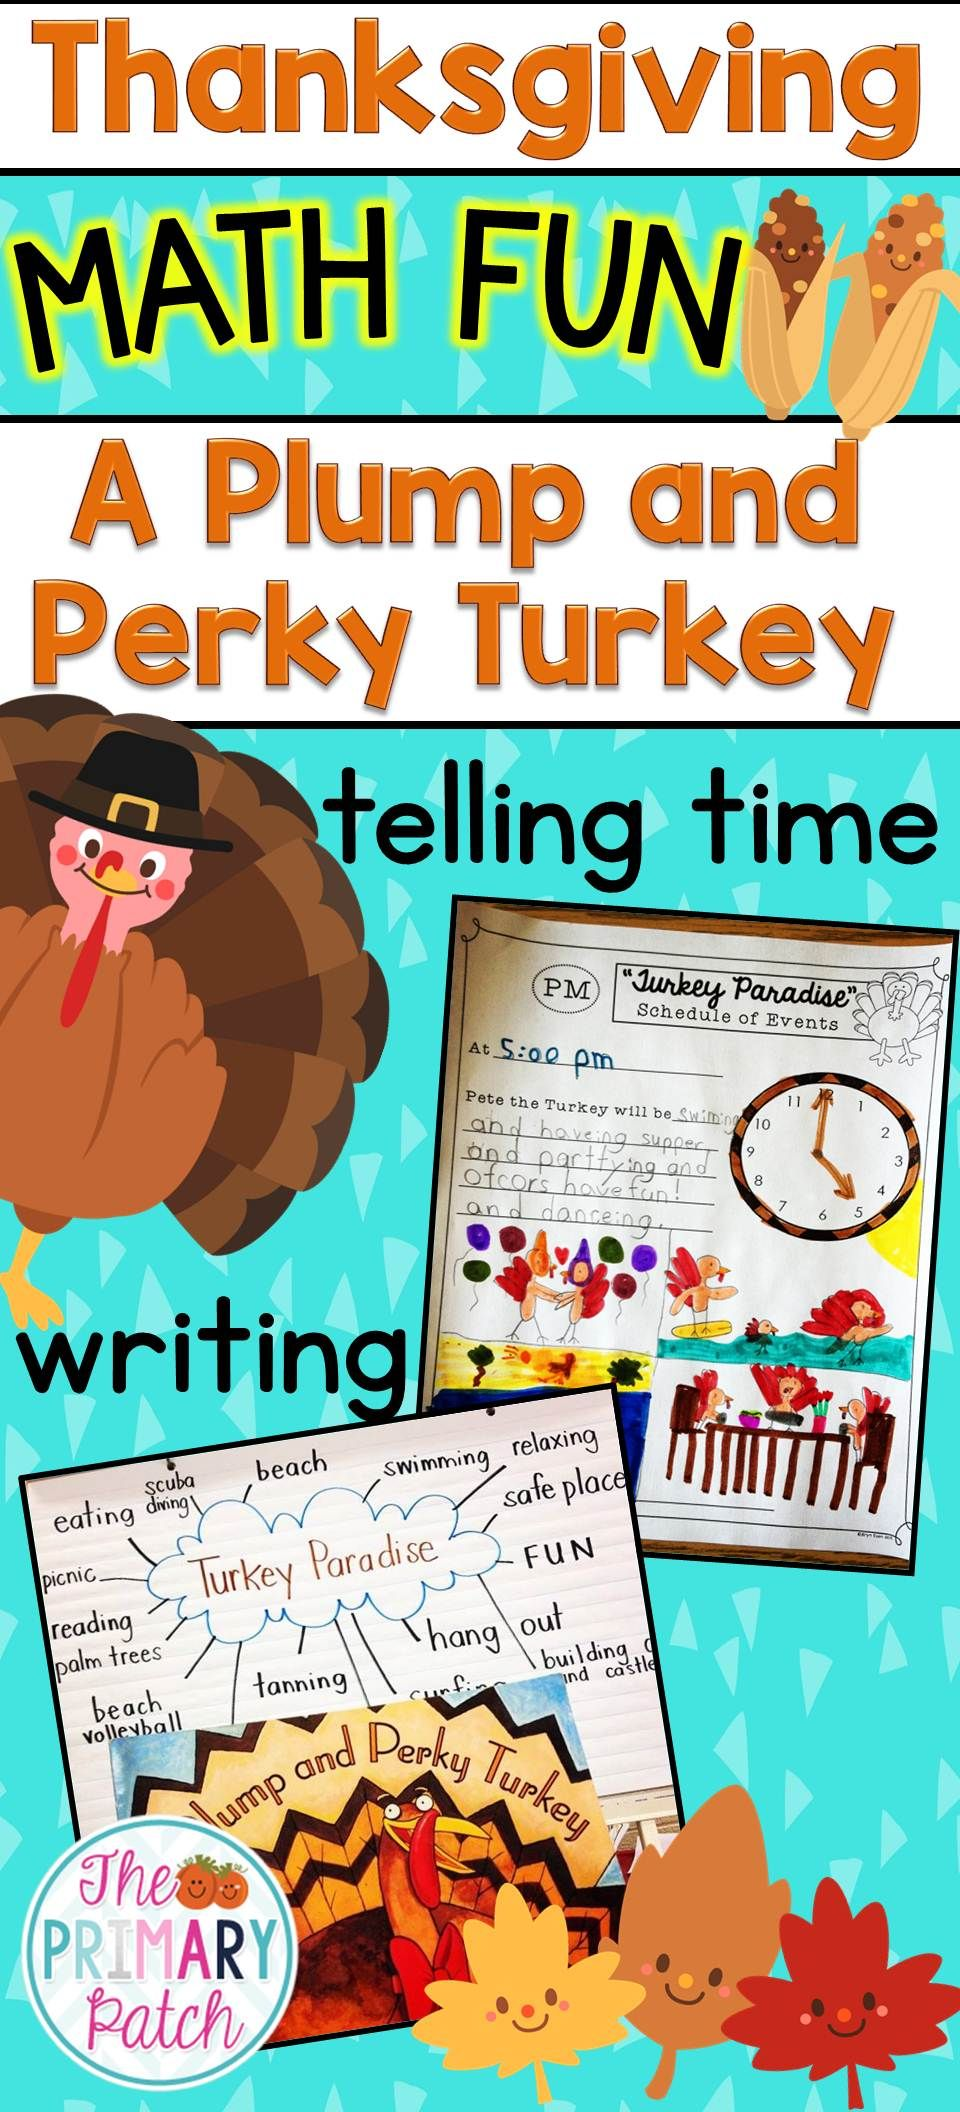 Plump and Perky Turkey Thanksgiving Telling Time Activities | Cross ...